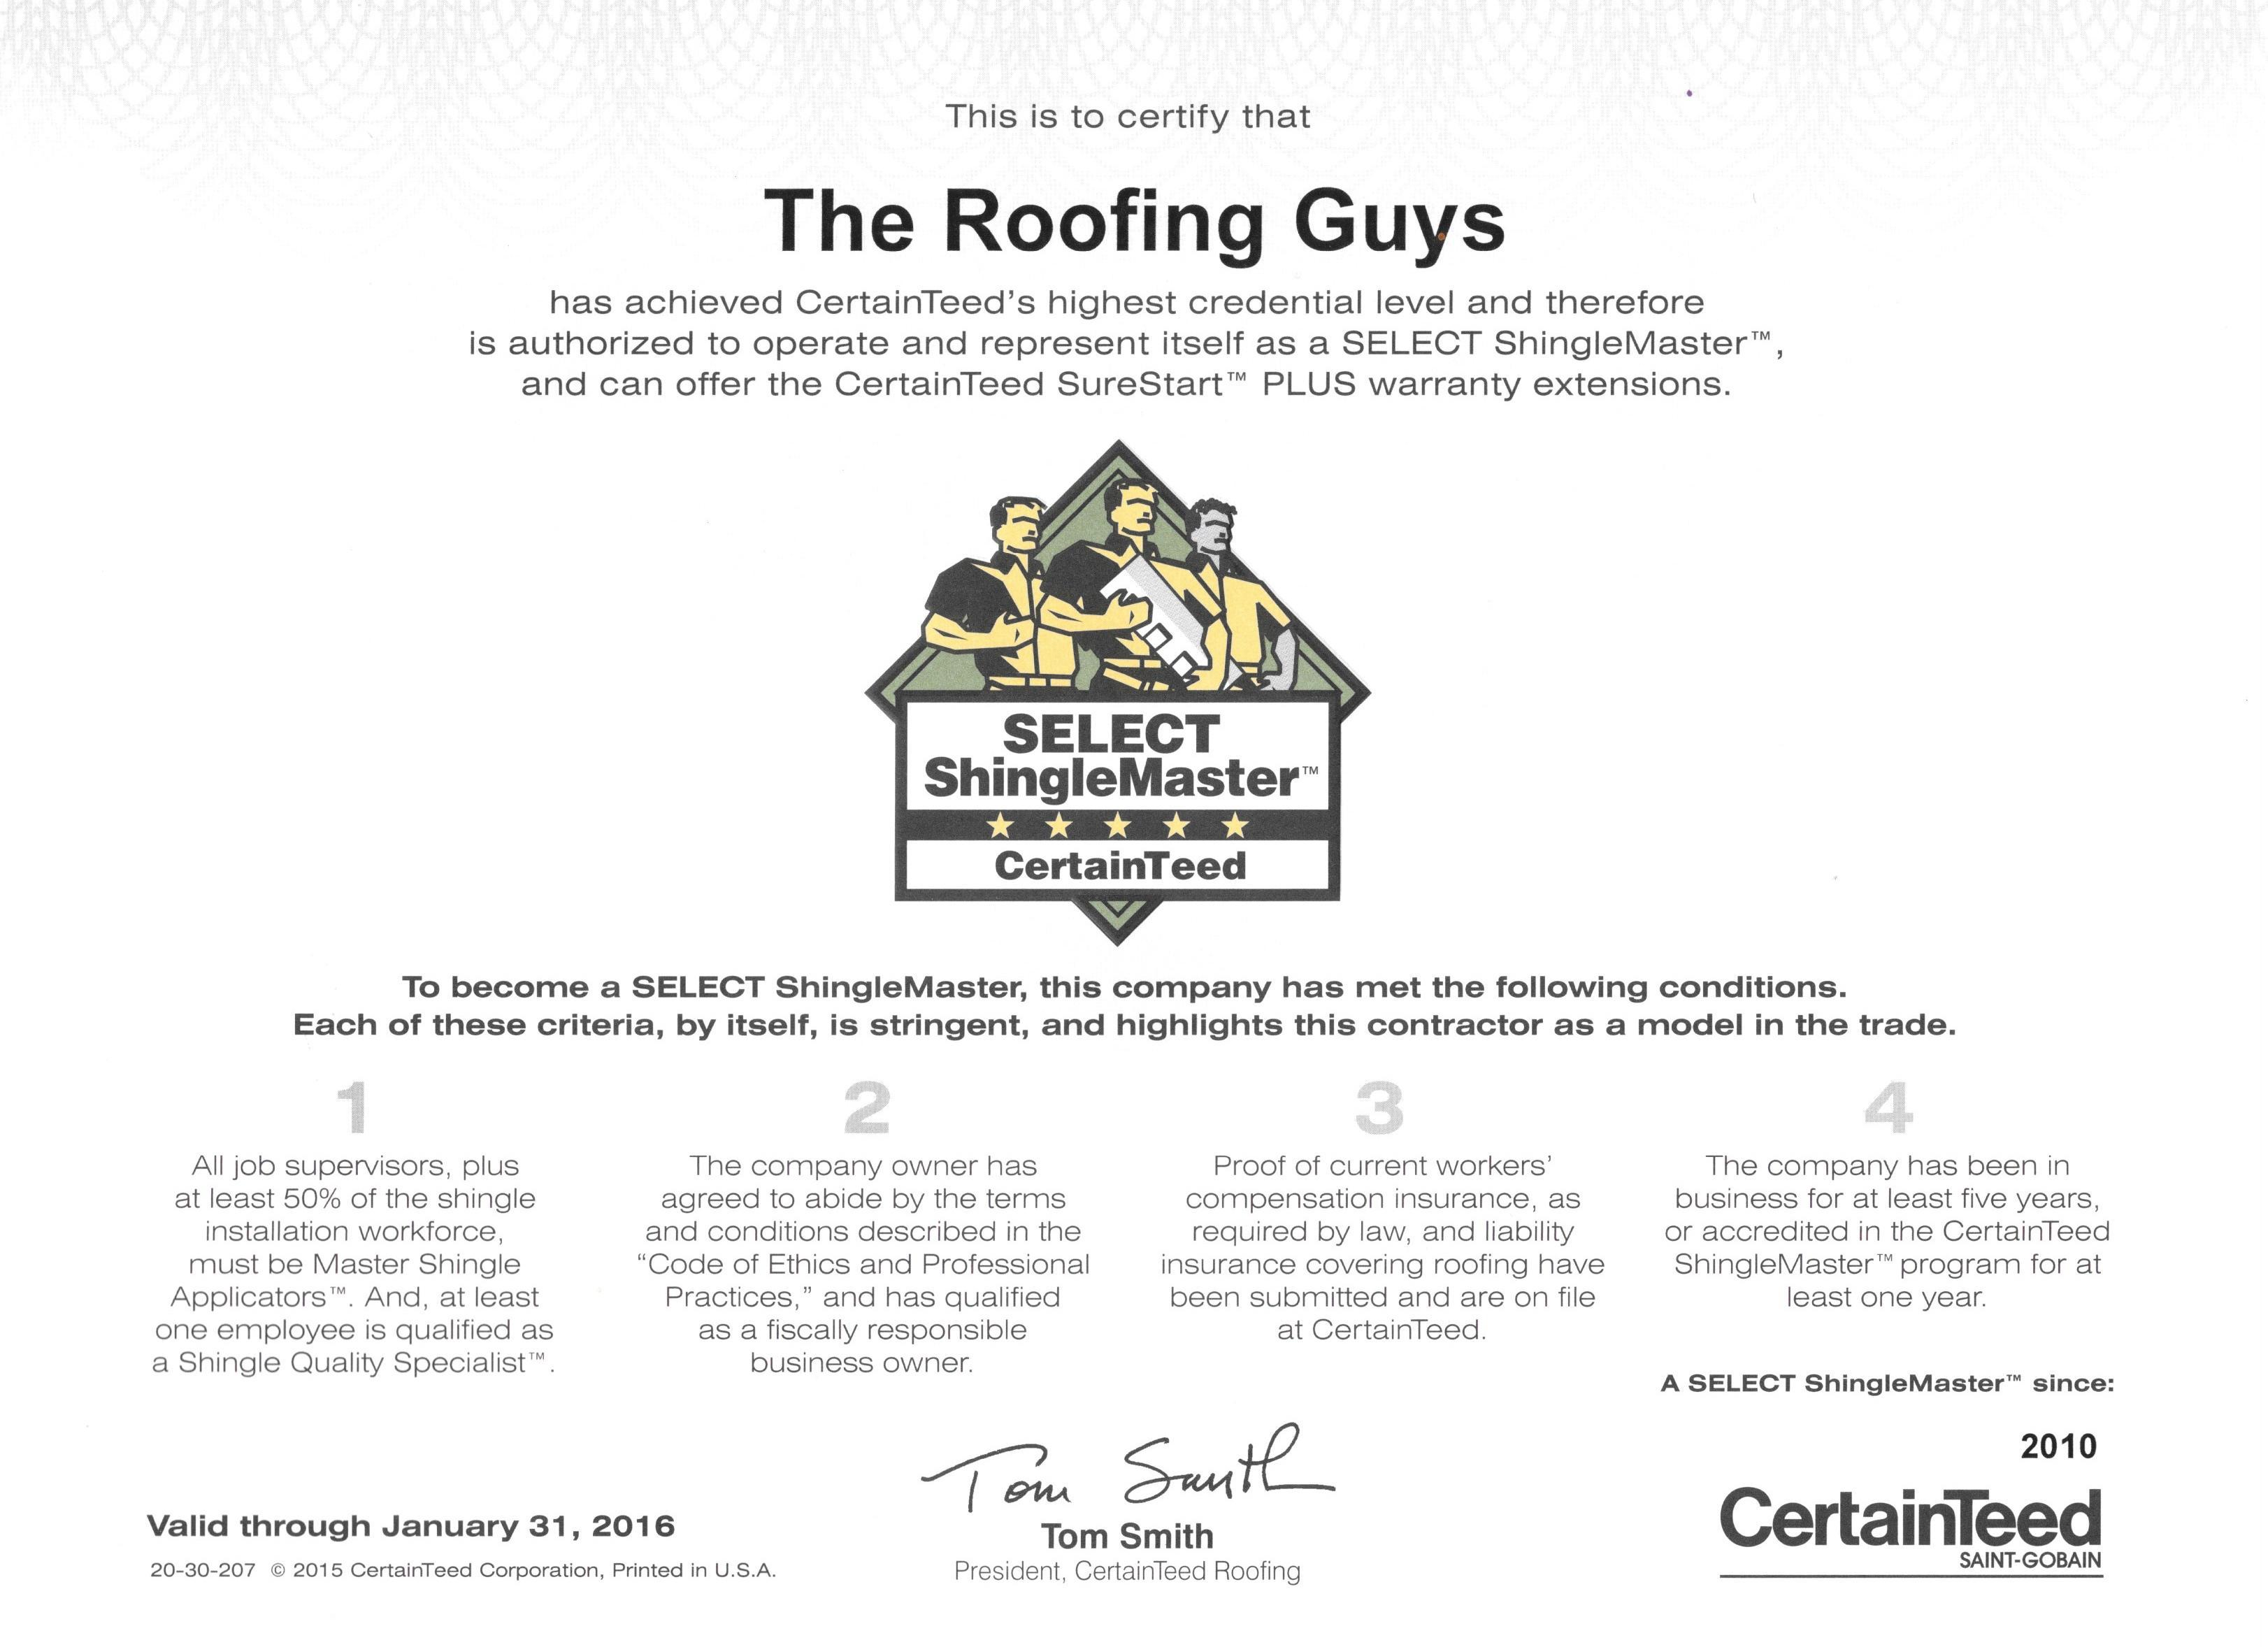 The Roofing Guys Inc